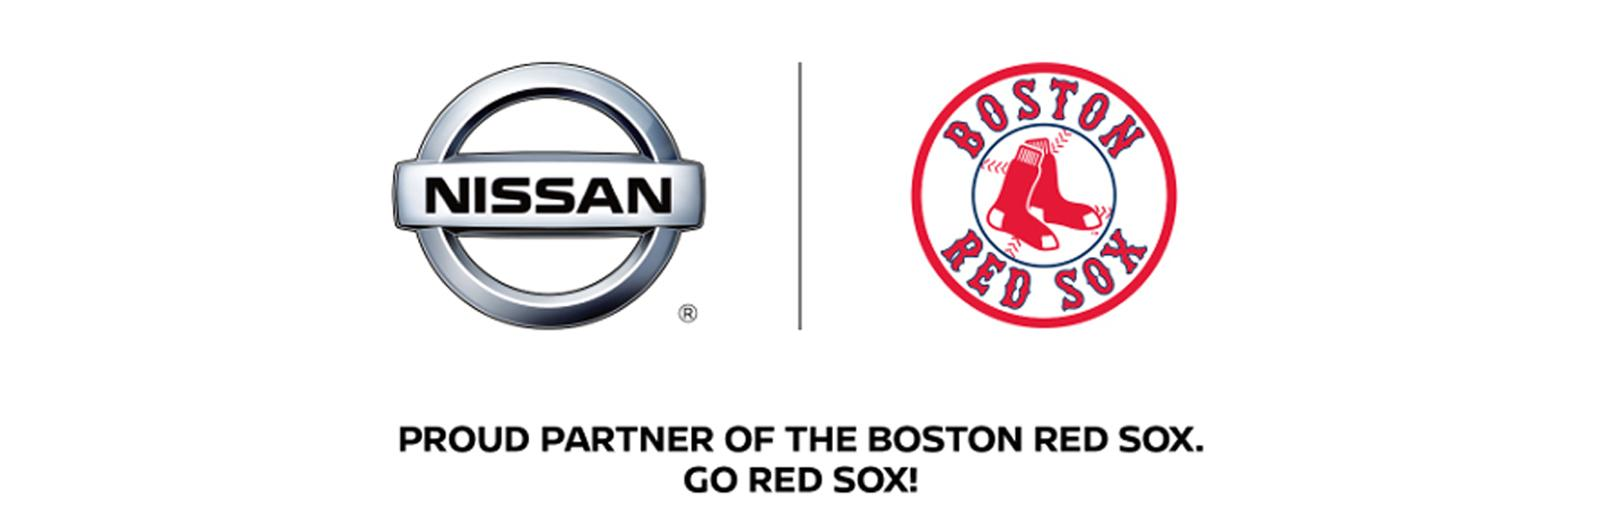 red sox banner